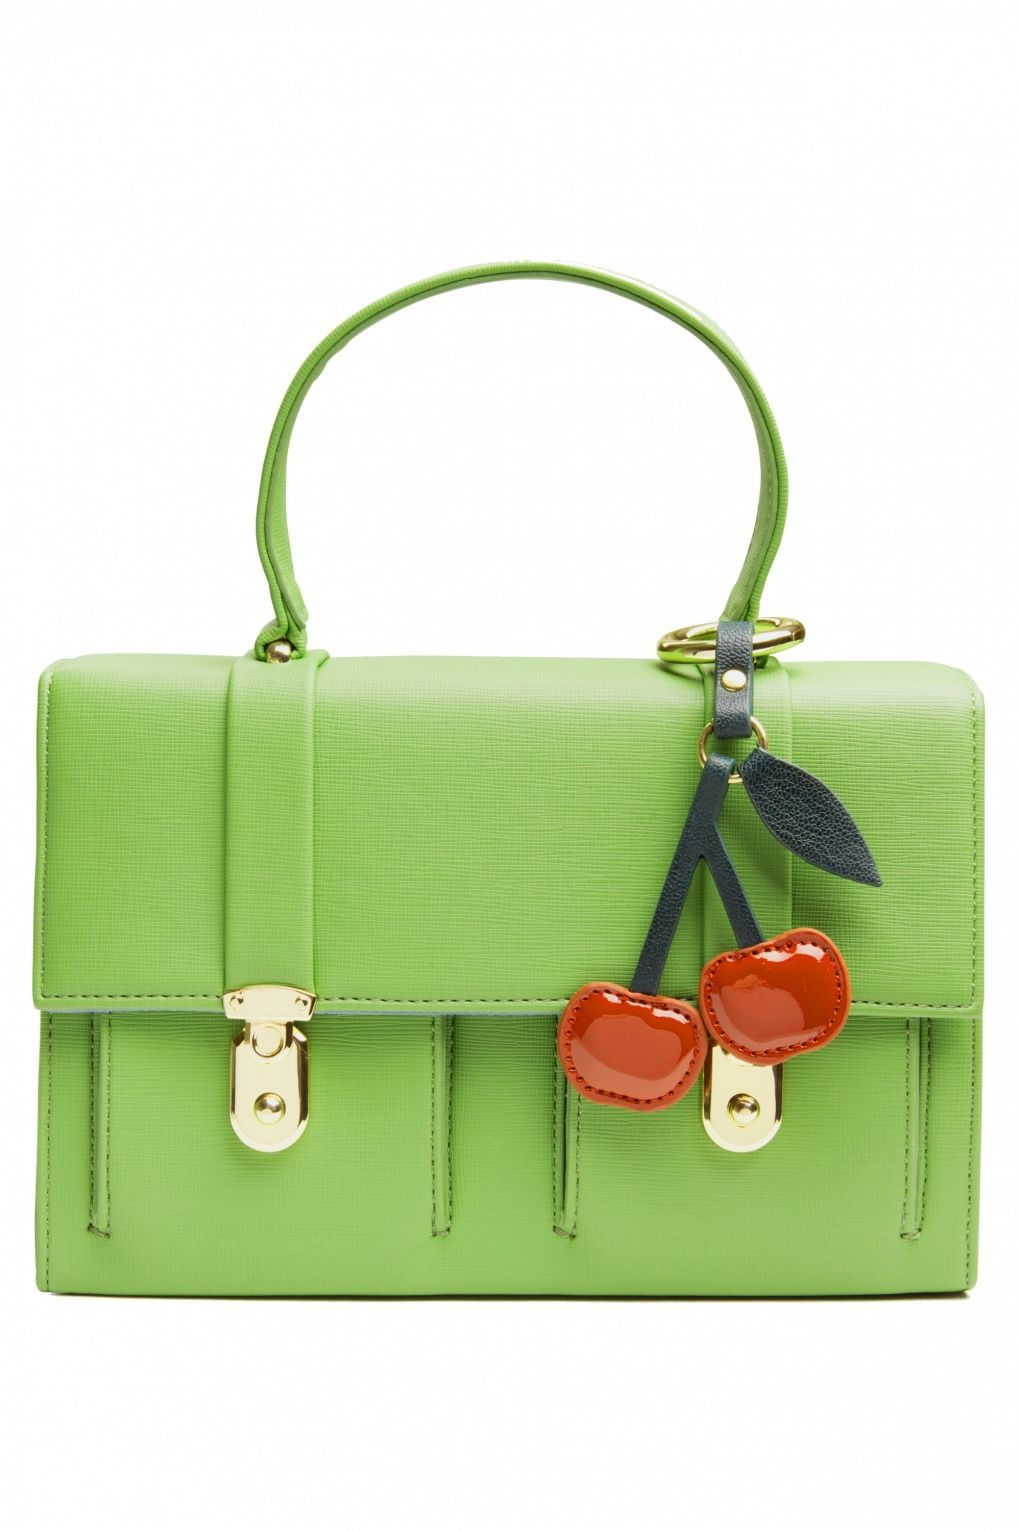 Edith Ella 60s Sweet Green Cherry Handbag